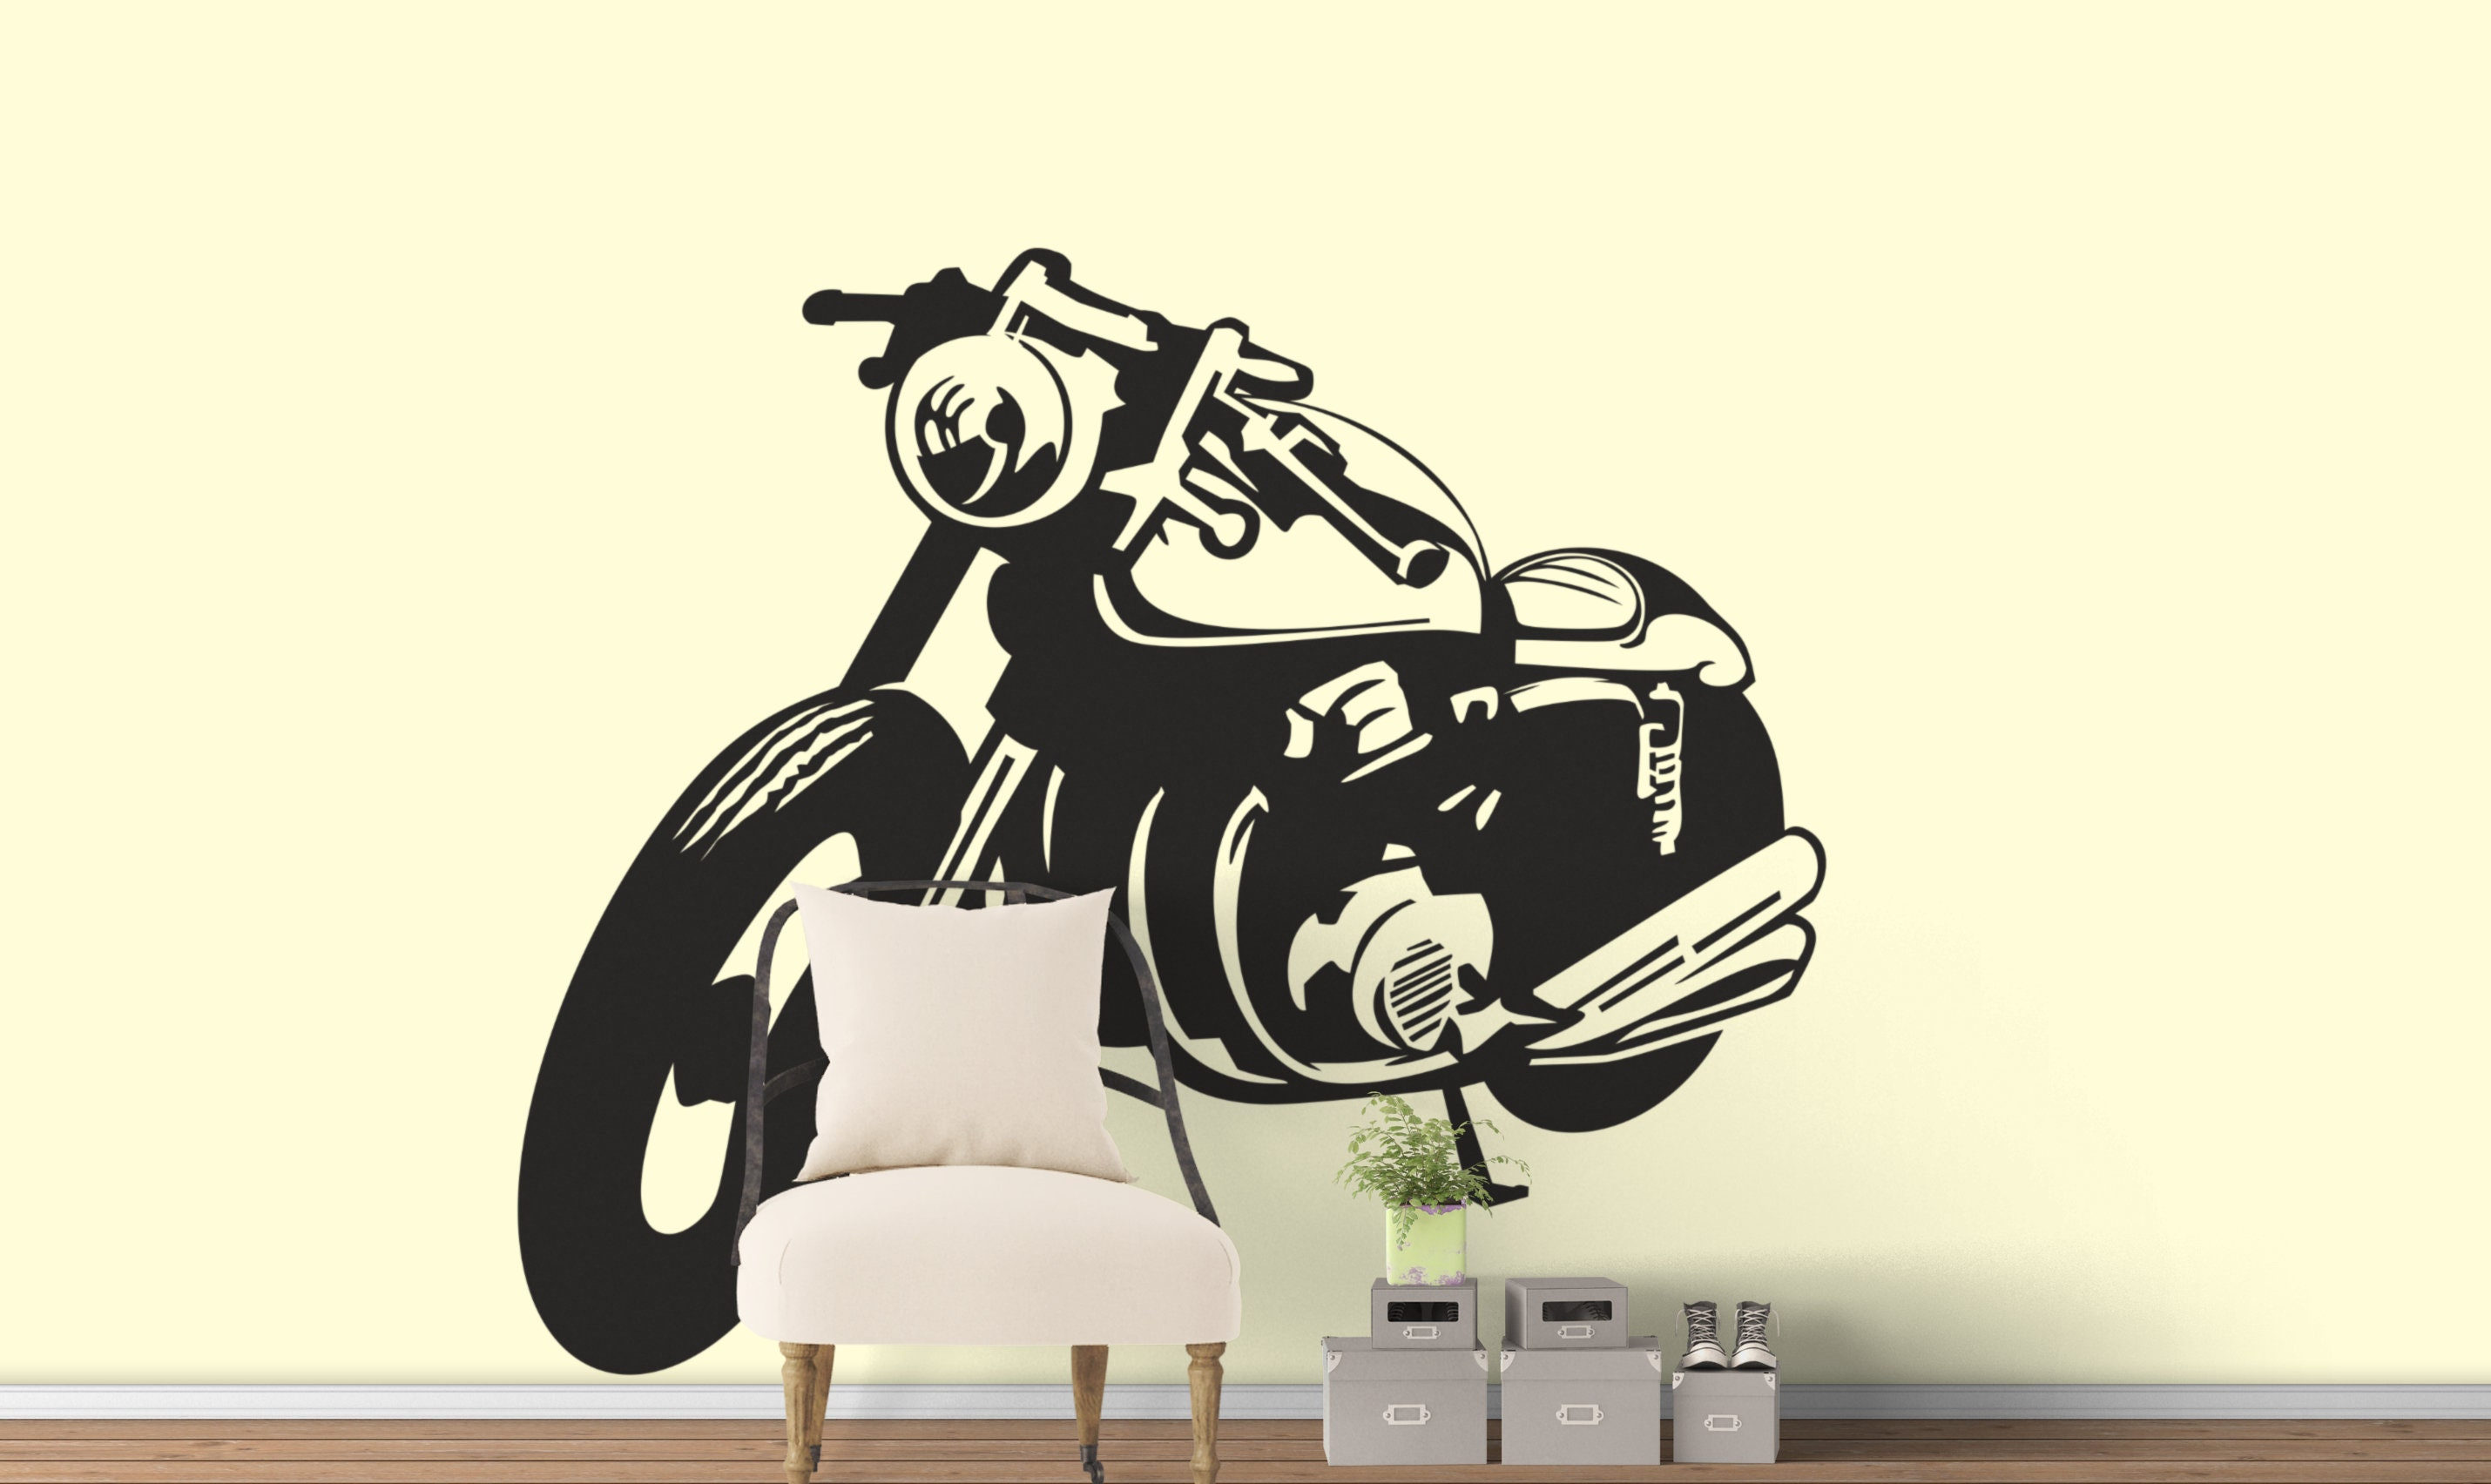 Classic motorcycle silhouette café racer die cut vinyl sticker decal wall decal motorsports bikers motoclub riders cafe racing